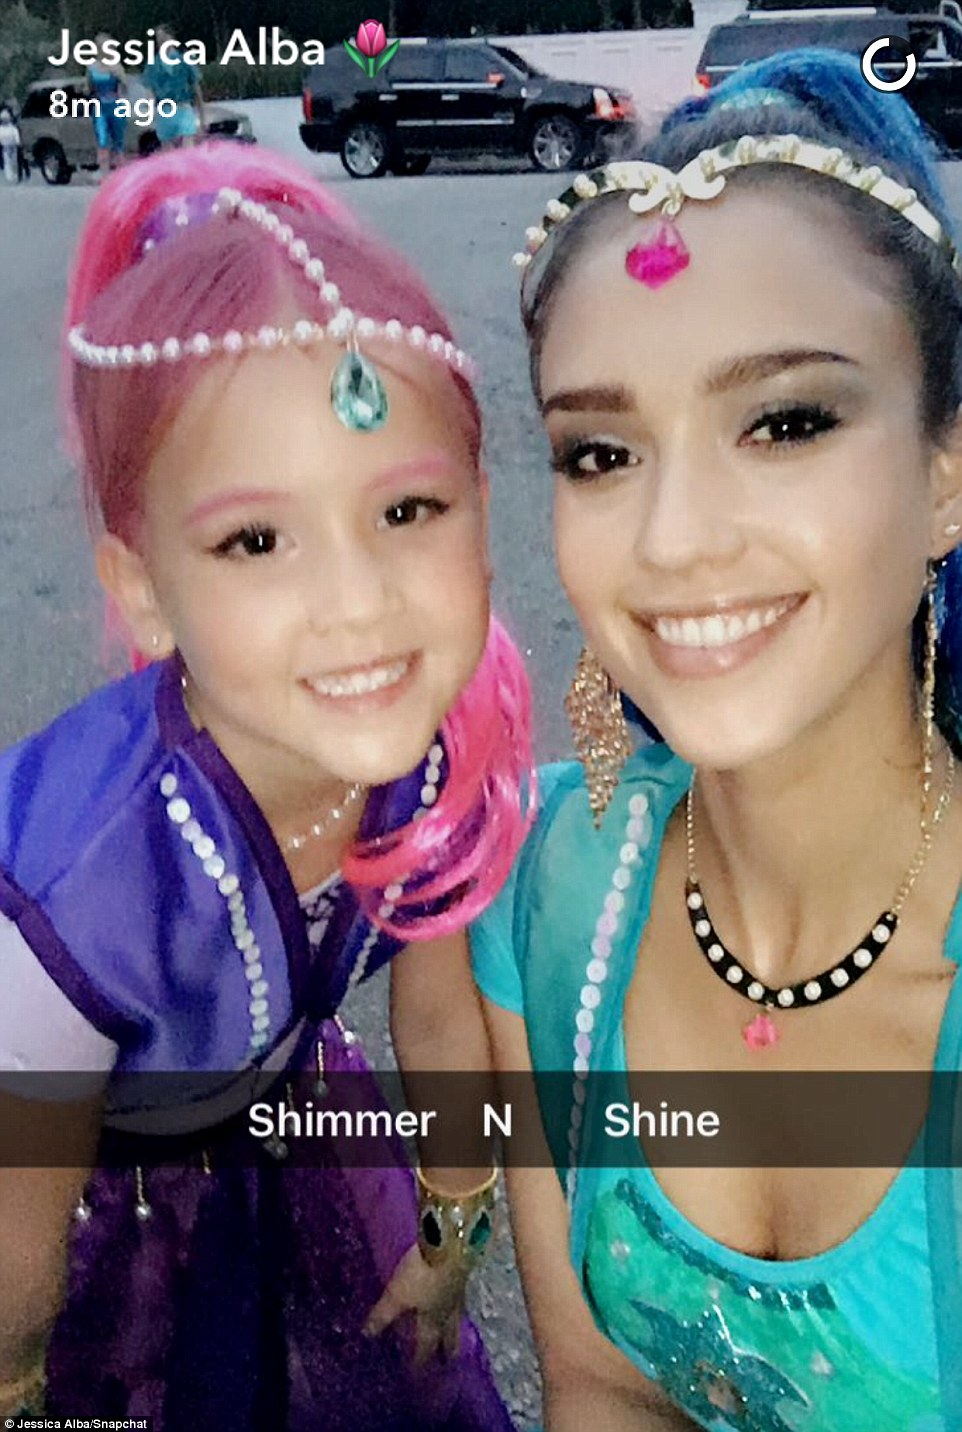 Earlier this weekend Alba dressed up as a character from her daughter's favorite television show Shimmer and Shine